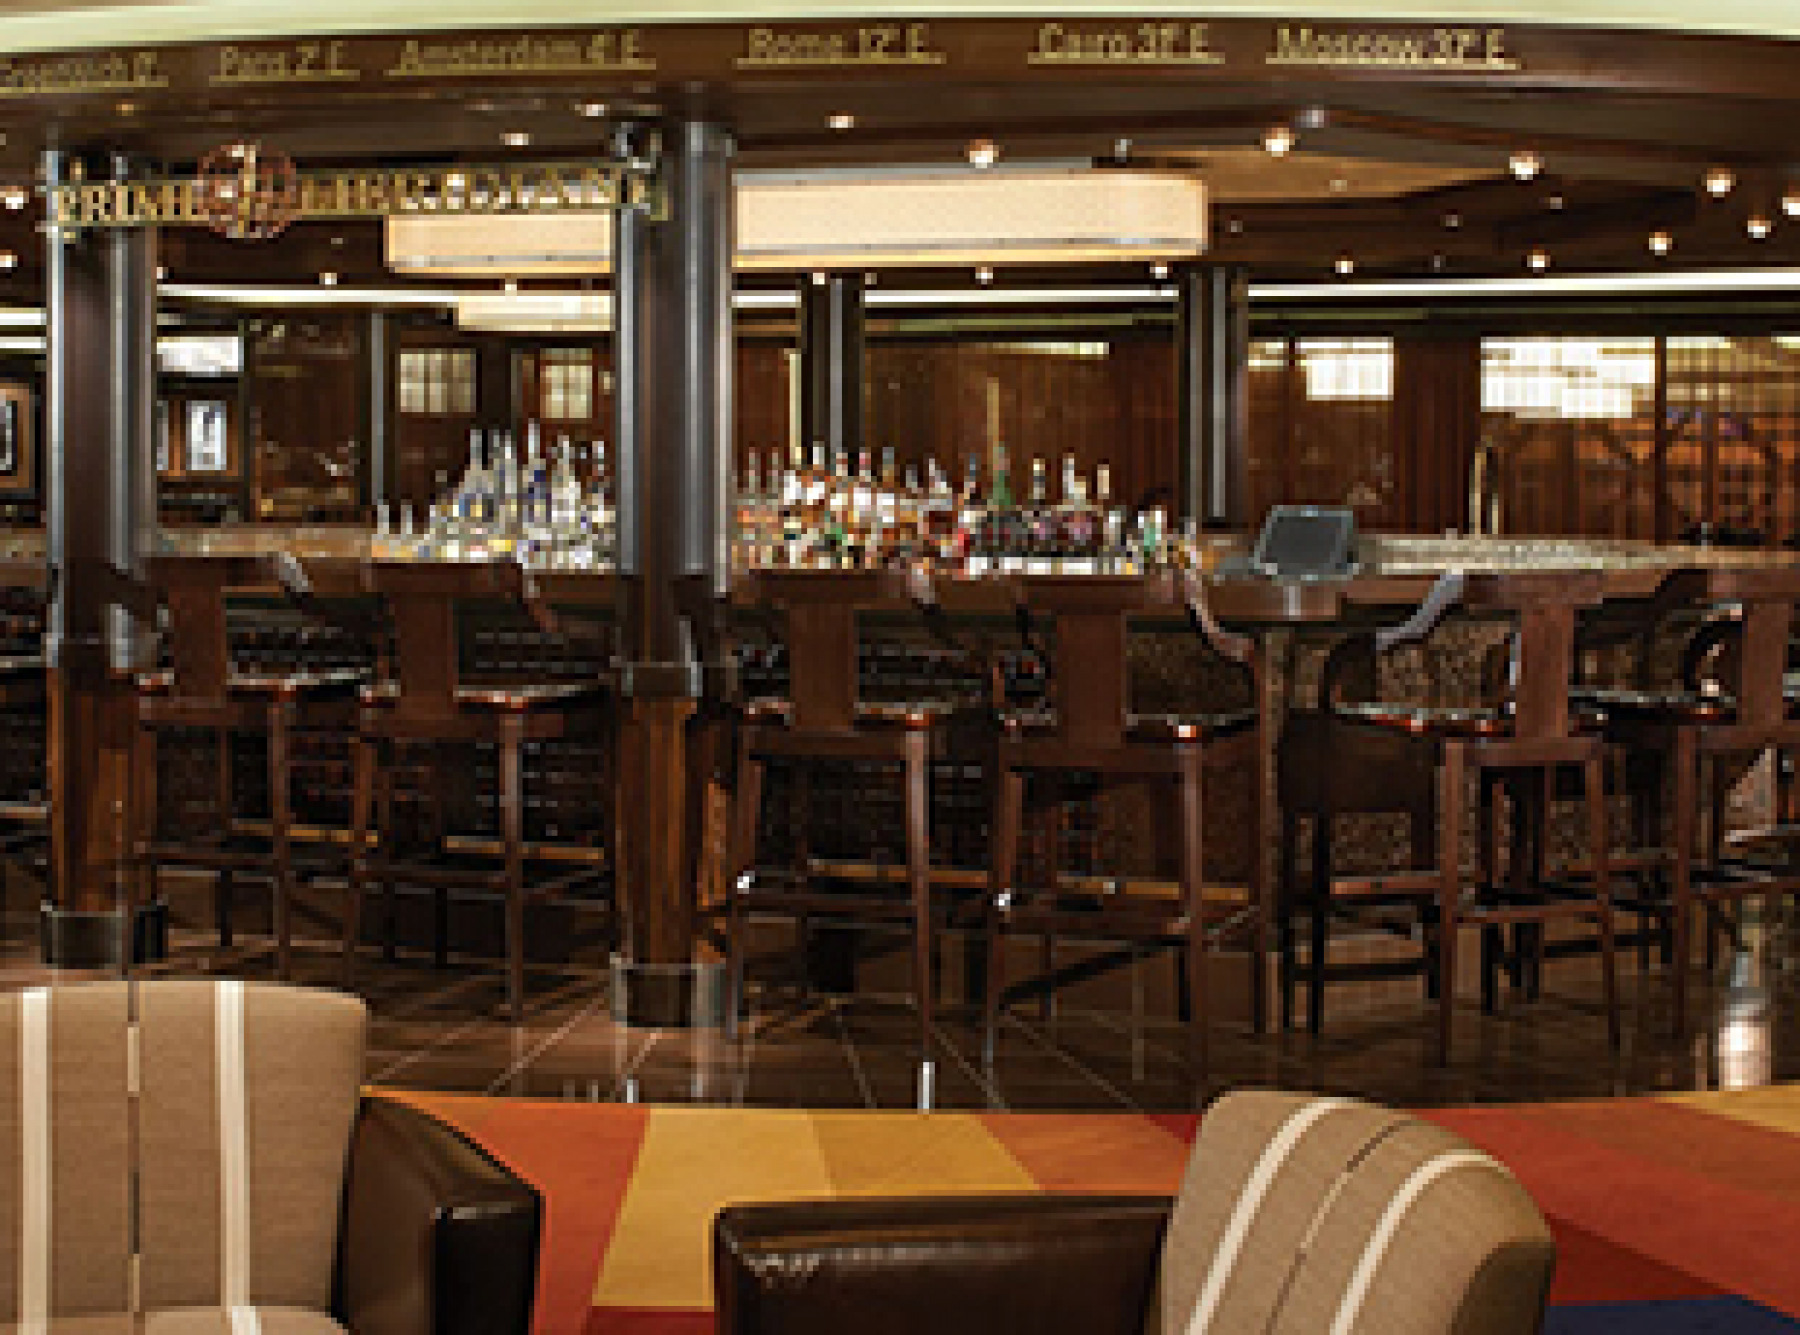 Norwegian Cruise Line Norwegian Breakaway Interior Prime Meridian Bar.jpg